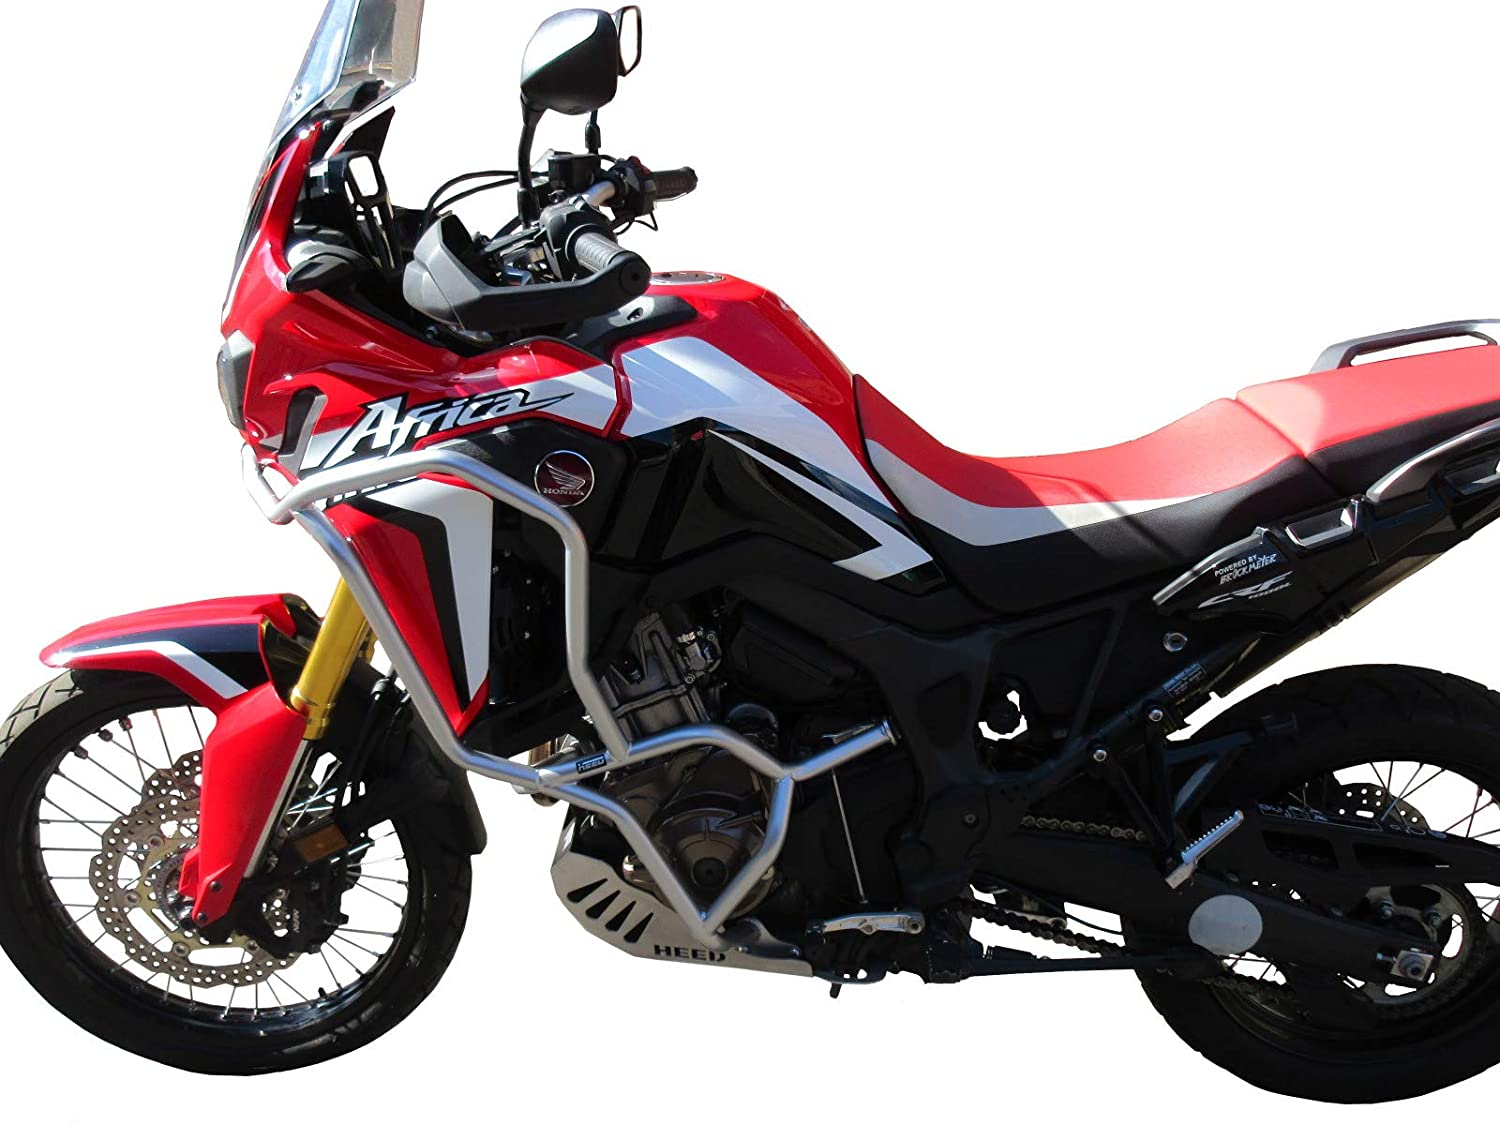 Paramotore HEED per CRF 1000 Africa Twin argento Bunker